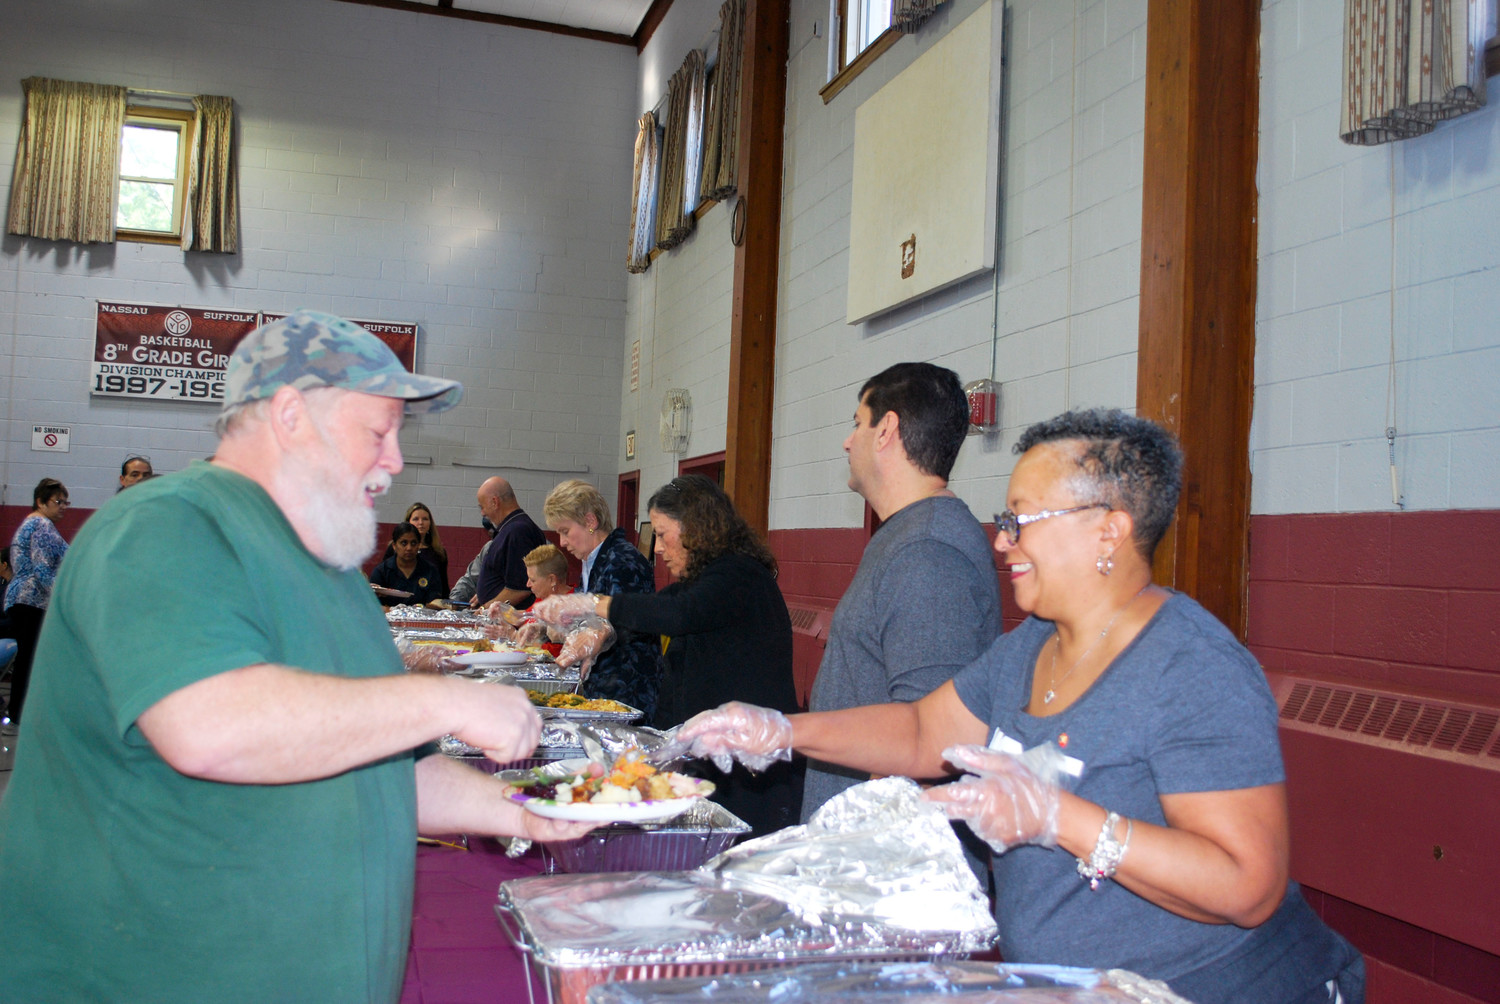 Valley Stream Lions member Monica Dingle provided service with a smile at The Club's Thanksgiving Day lunch at the St. Joseph School in Hewlett on Nov. 20.